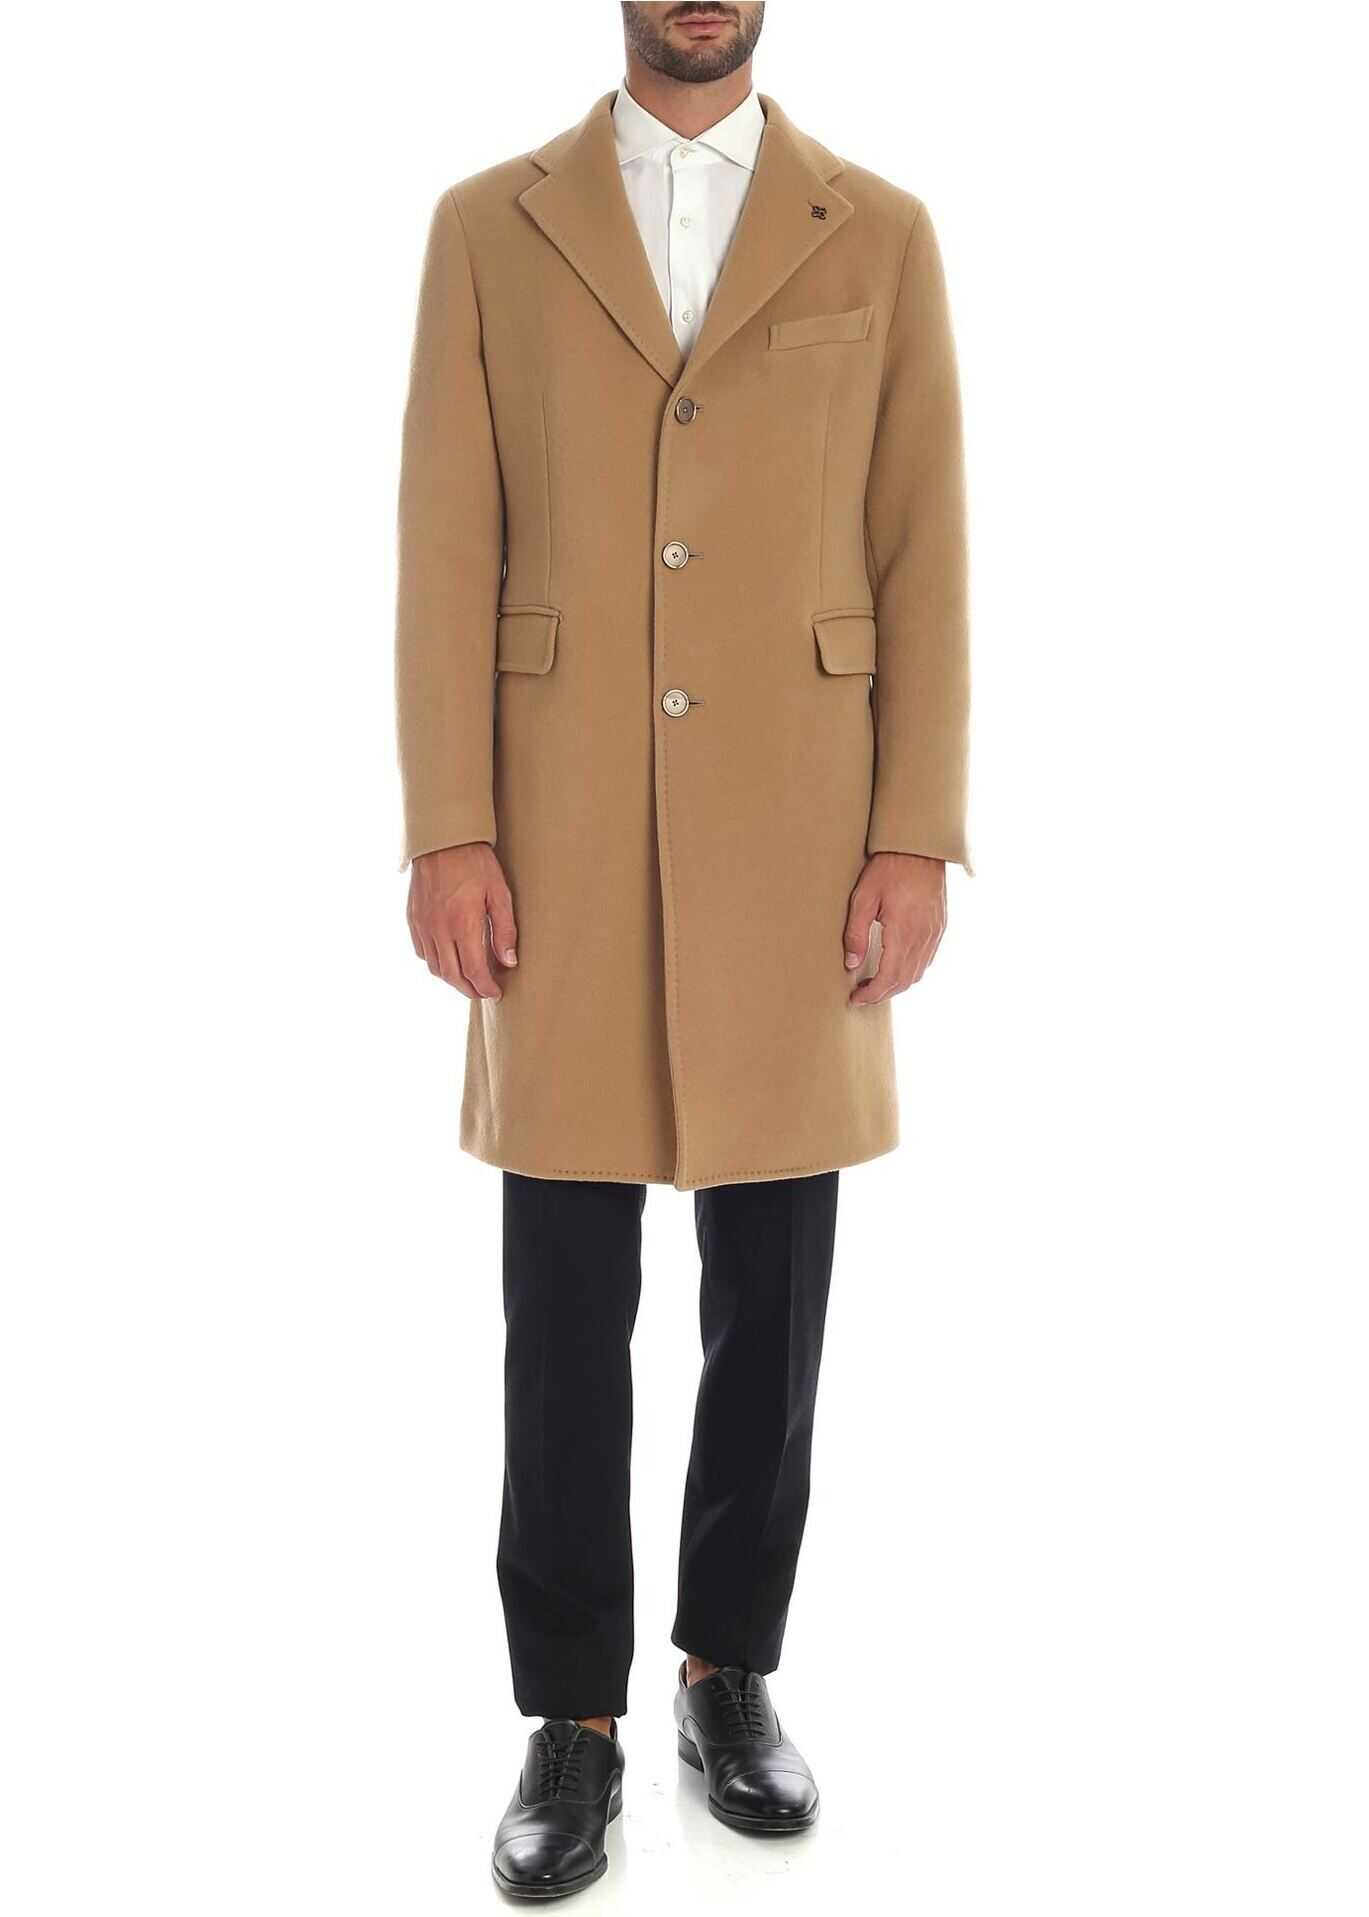 Single-Breasted Coat In Beige Color thumbnail